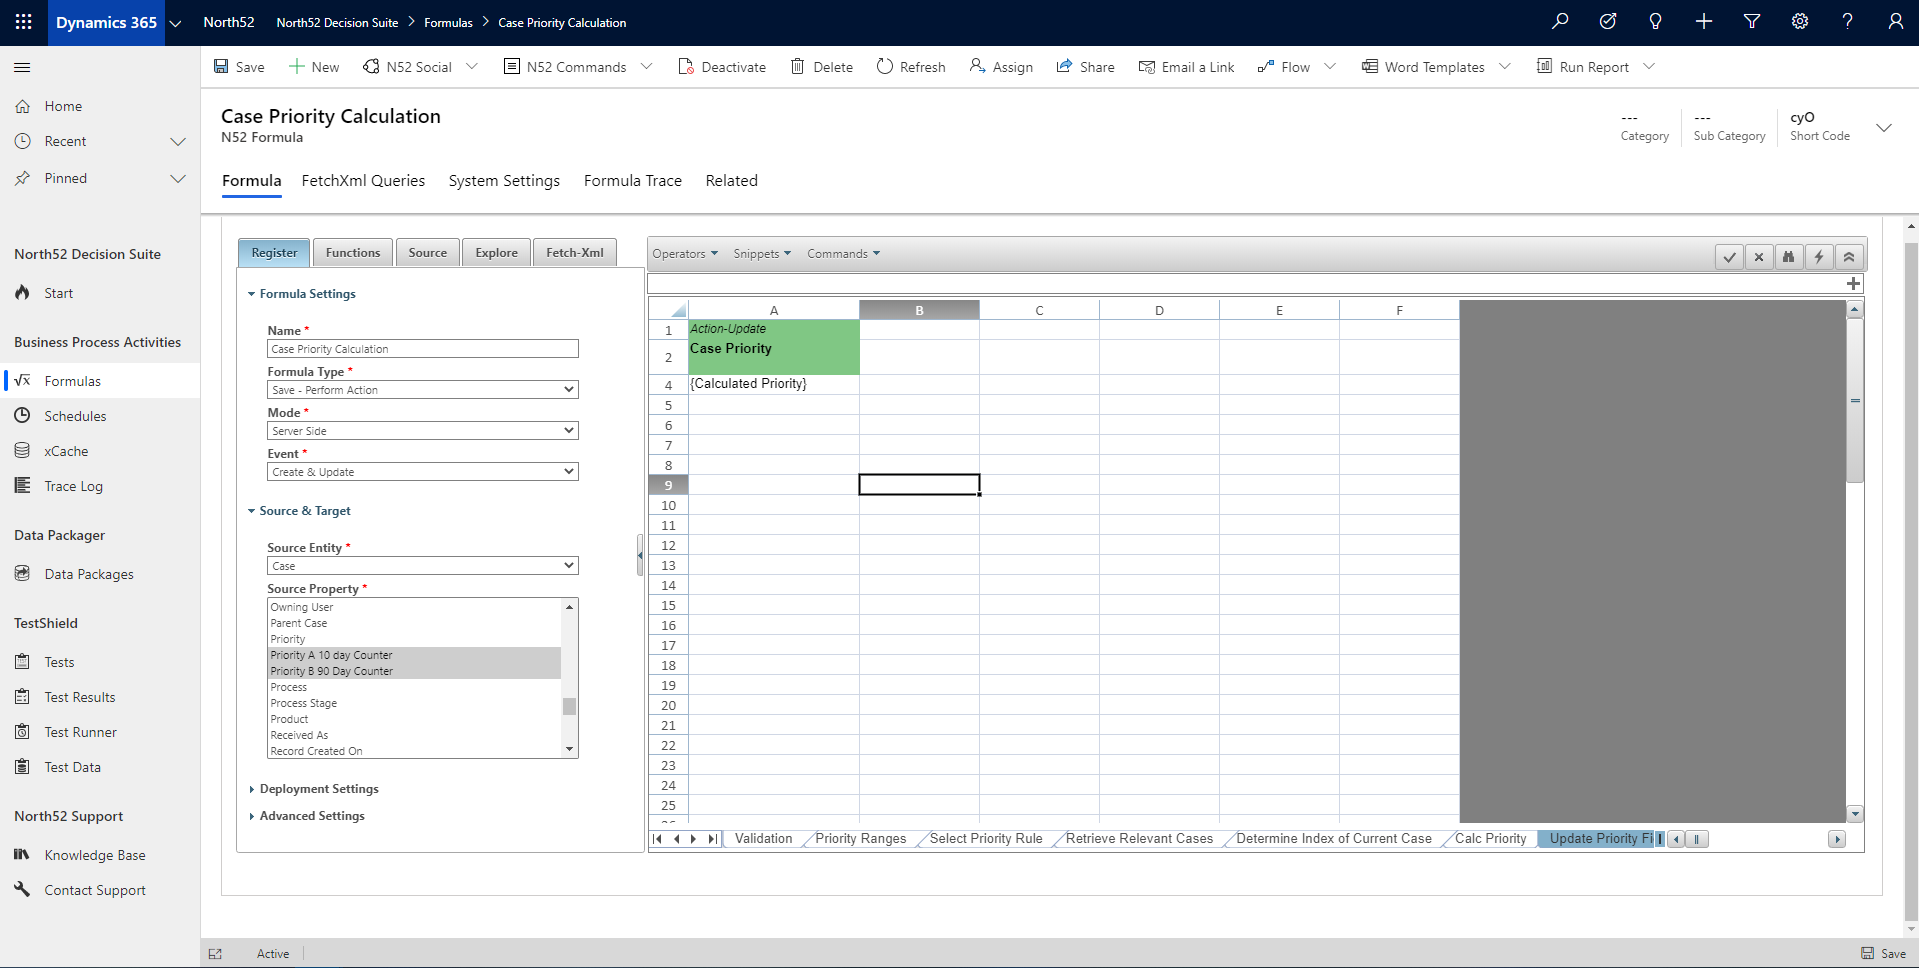 Update Priority Field Decision Table - North52 Business Rules Engine for Dynamics 365